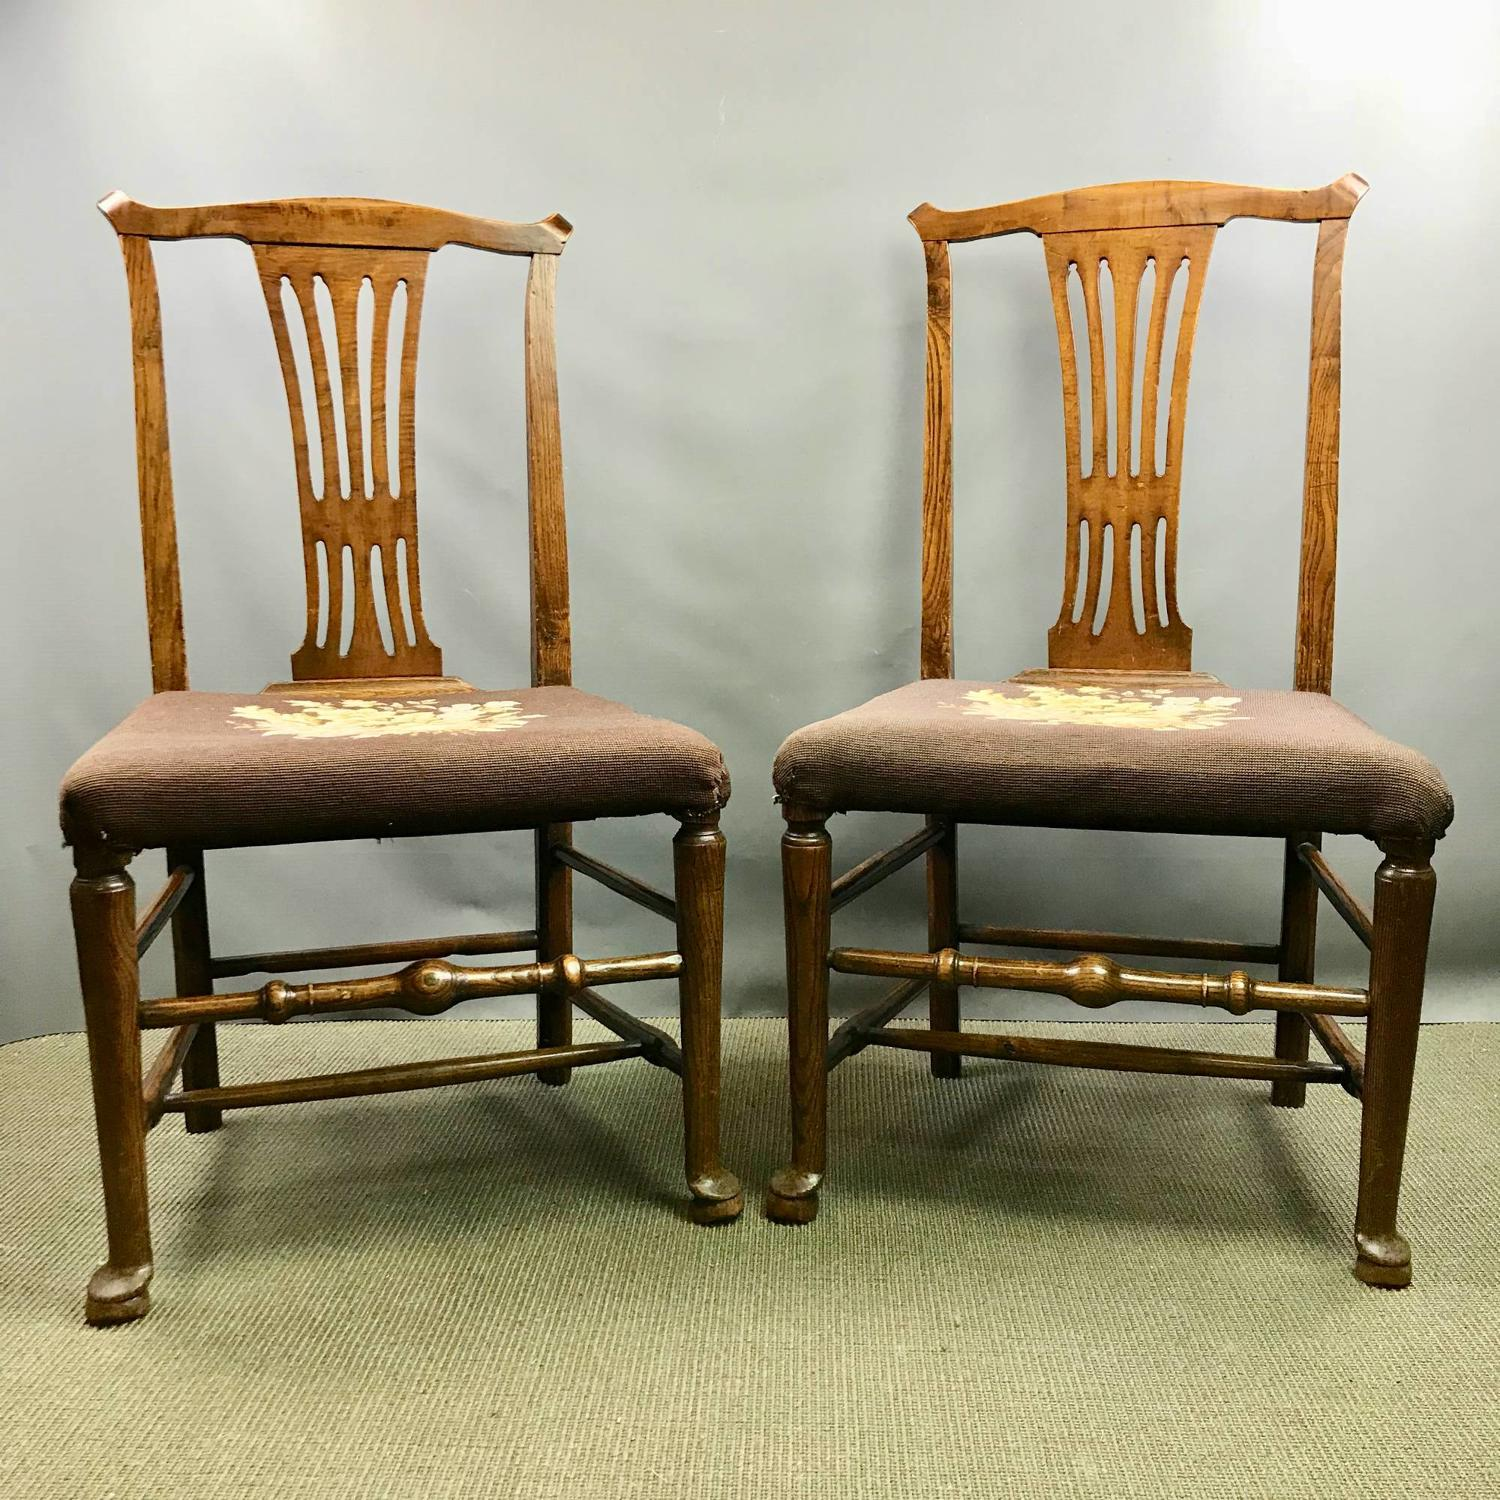 Pair of Country Georgian Oak Chairs